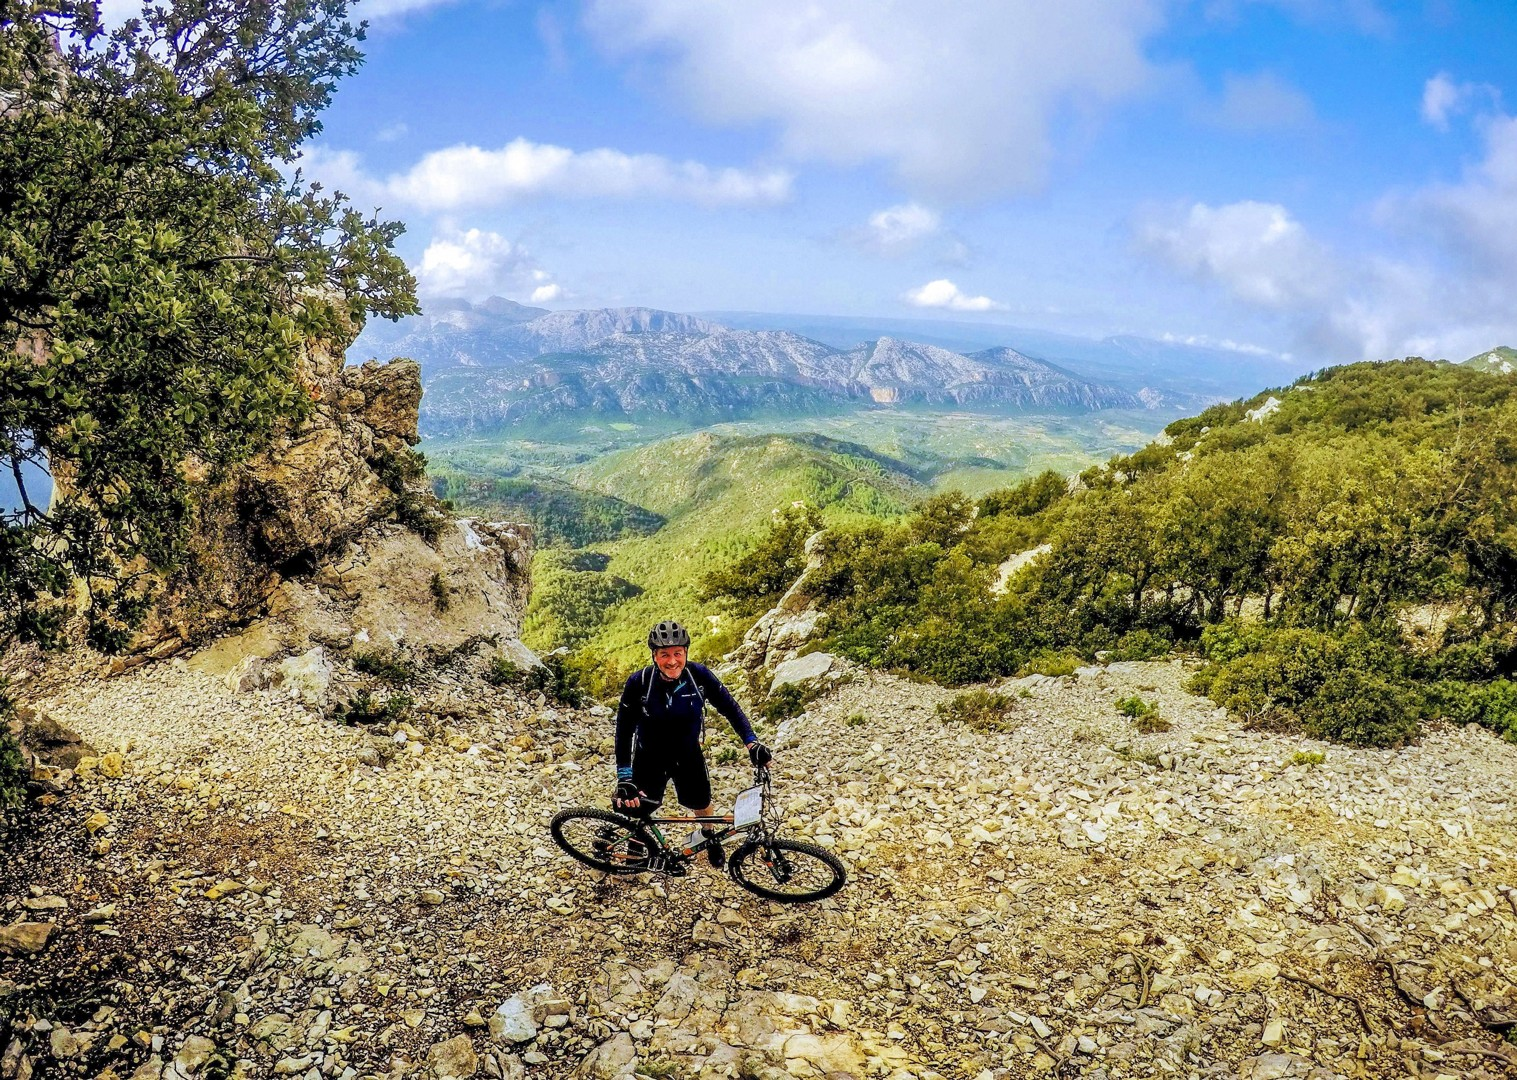 stunning-mountain-gennargentu-range-biking-sardinia.jpg - Italy - Sardinia - Coast to Coast - Self-Guided Mountain Bike Holiday - Mountain Biking